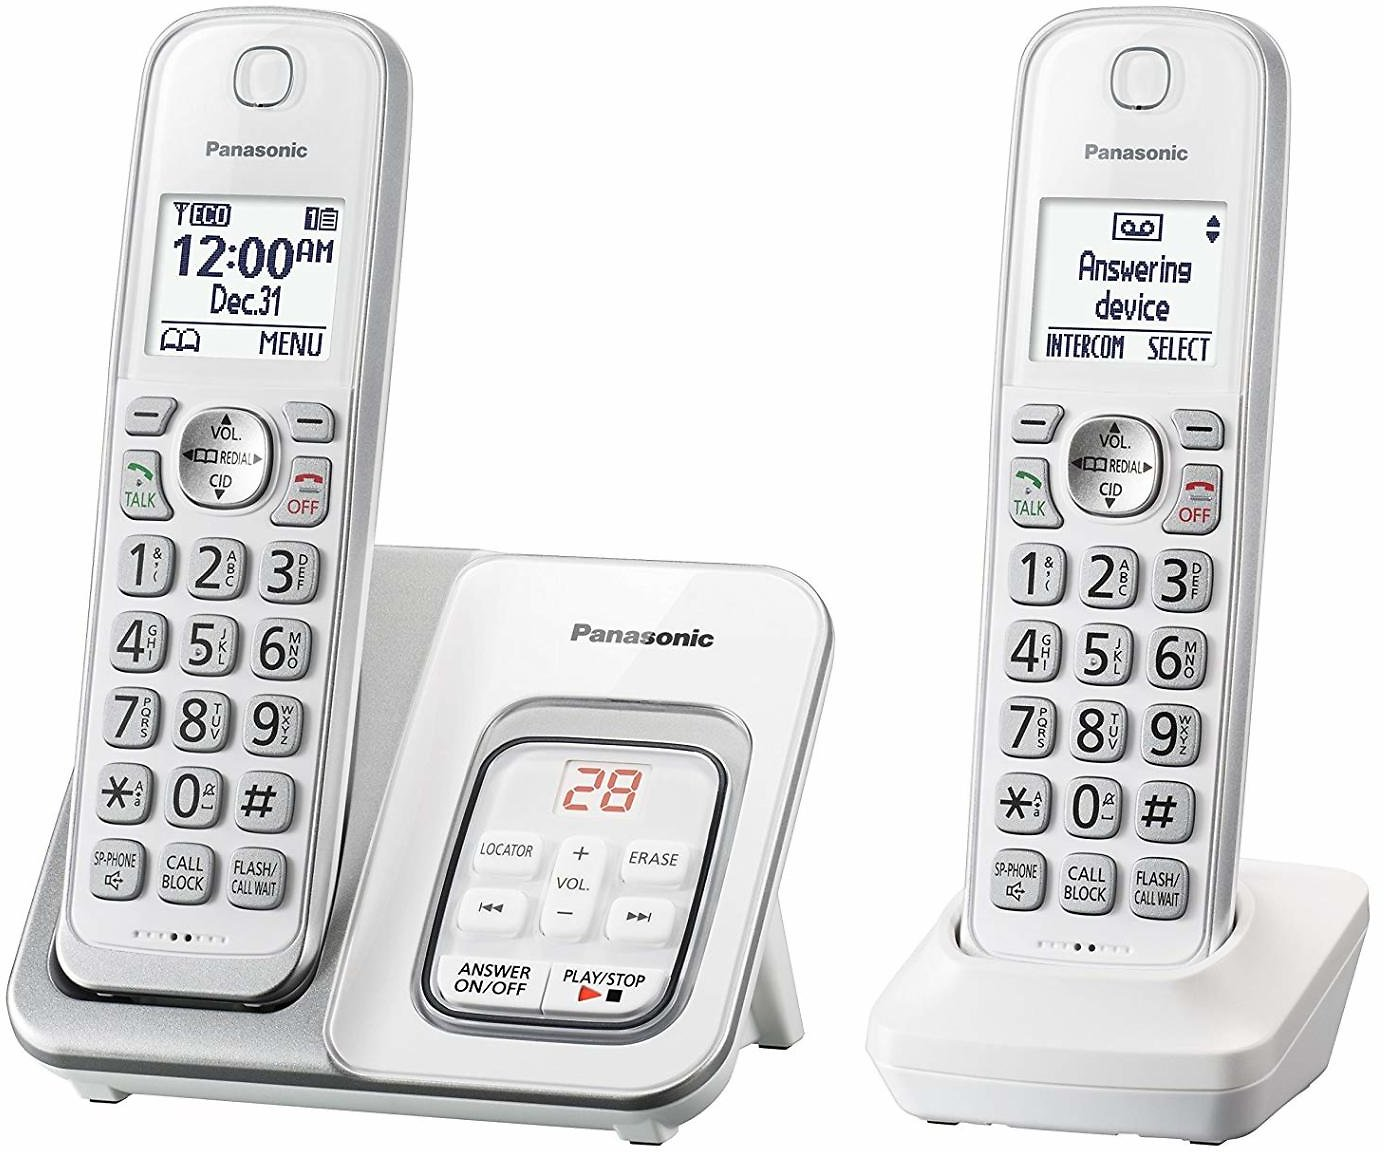 Panasonic DECT 6.0 Expandable Cordless Phone with Answering Machine - 2 Cordless Handsets